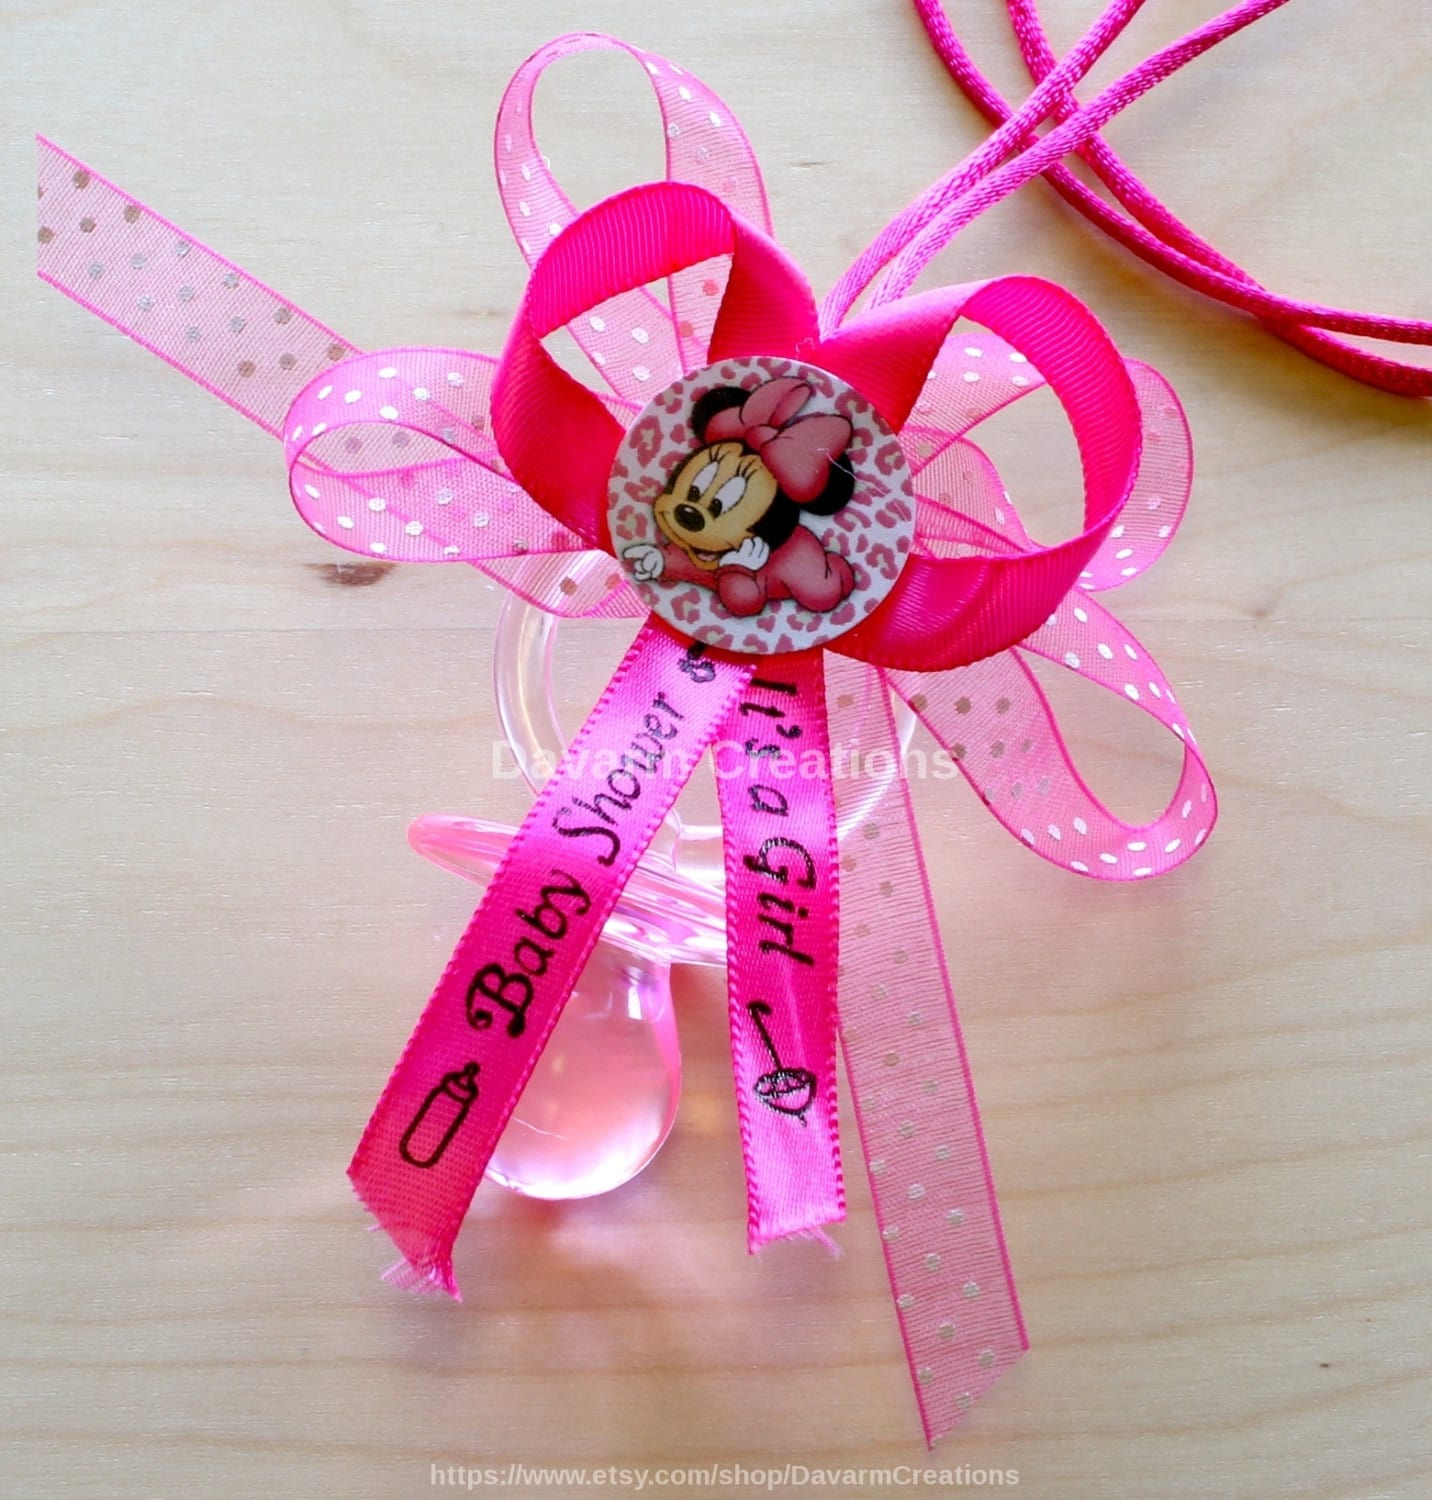 Minnie Mouse Baby Shower Party Favors: Minnie Mouse Baby Shower Necklace Favors Dozen/Minnie Mouse